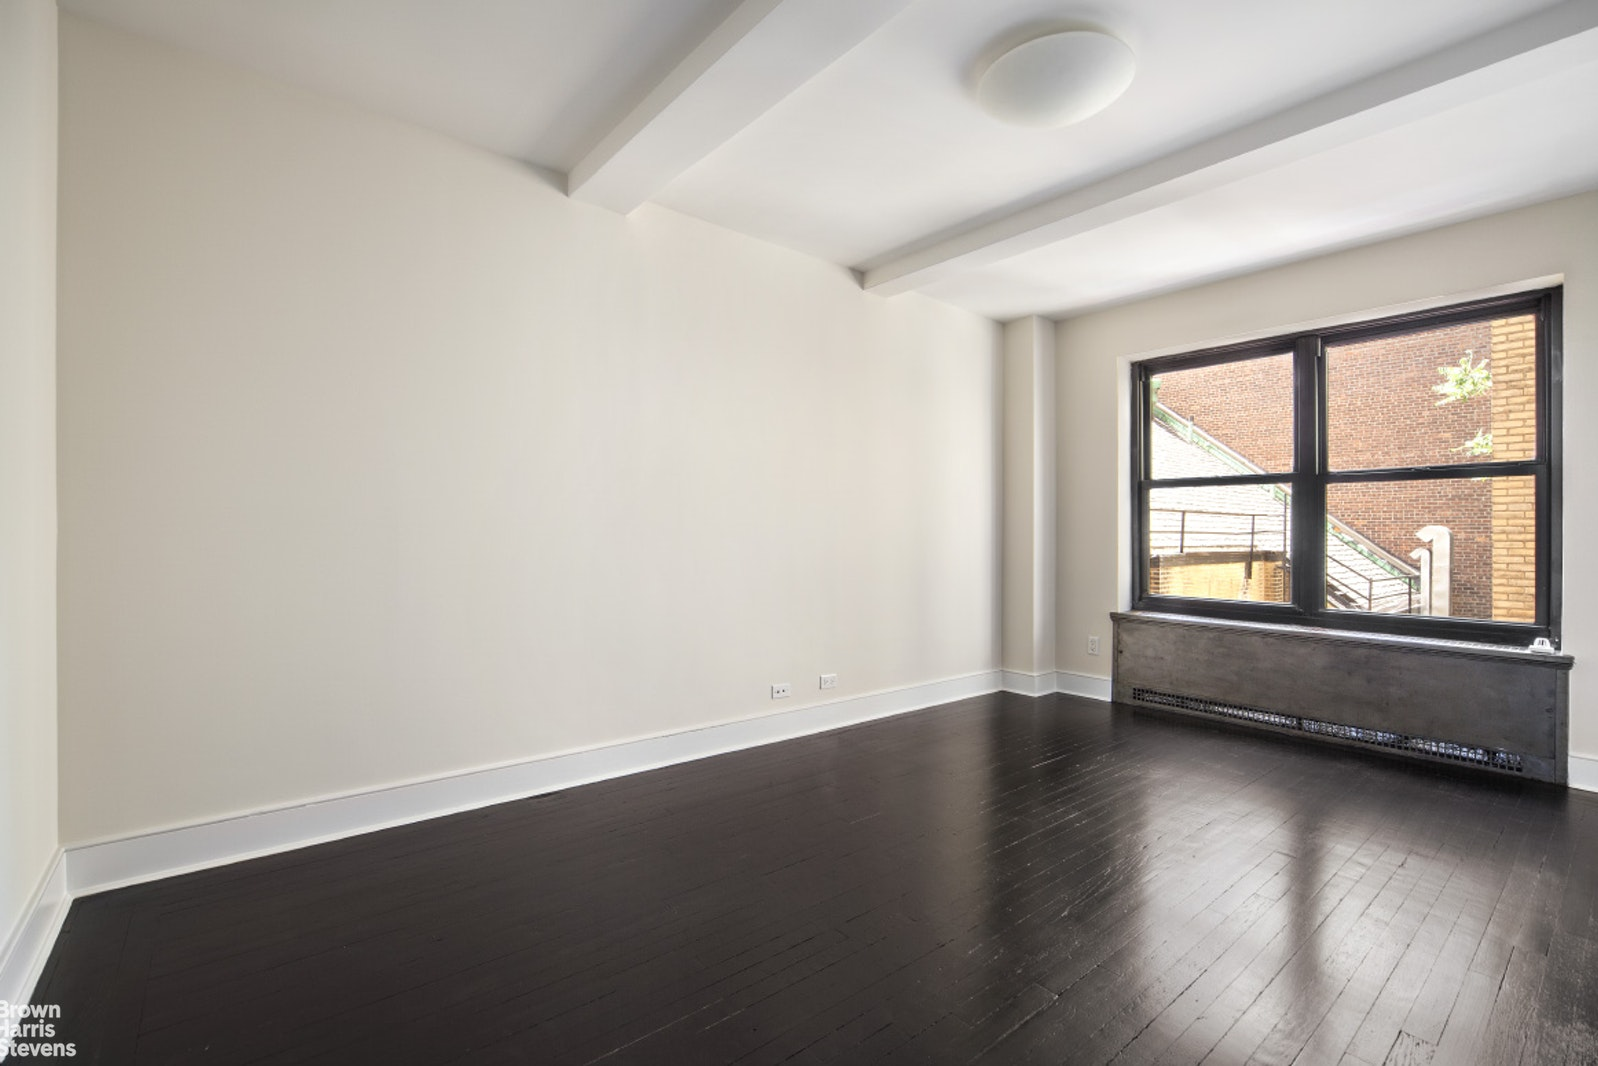 56 Seventh Avenue 3a, West Village, NYC, 10011, $4,022, Property For Rent, Halstead Real Estate, Photo 4